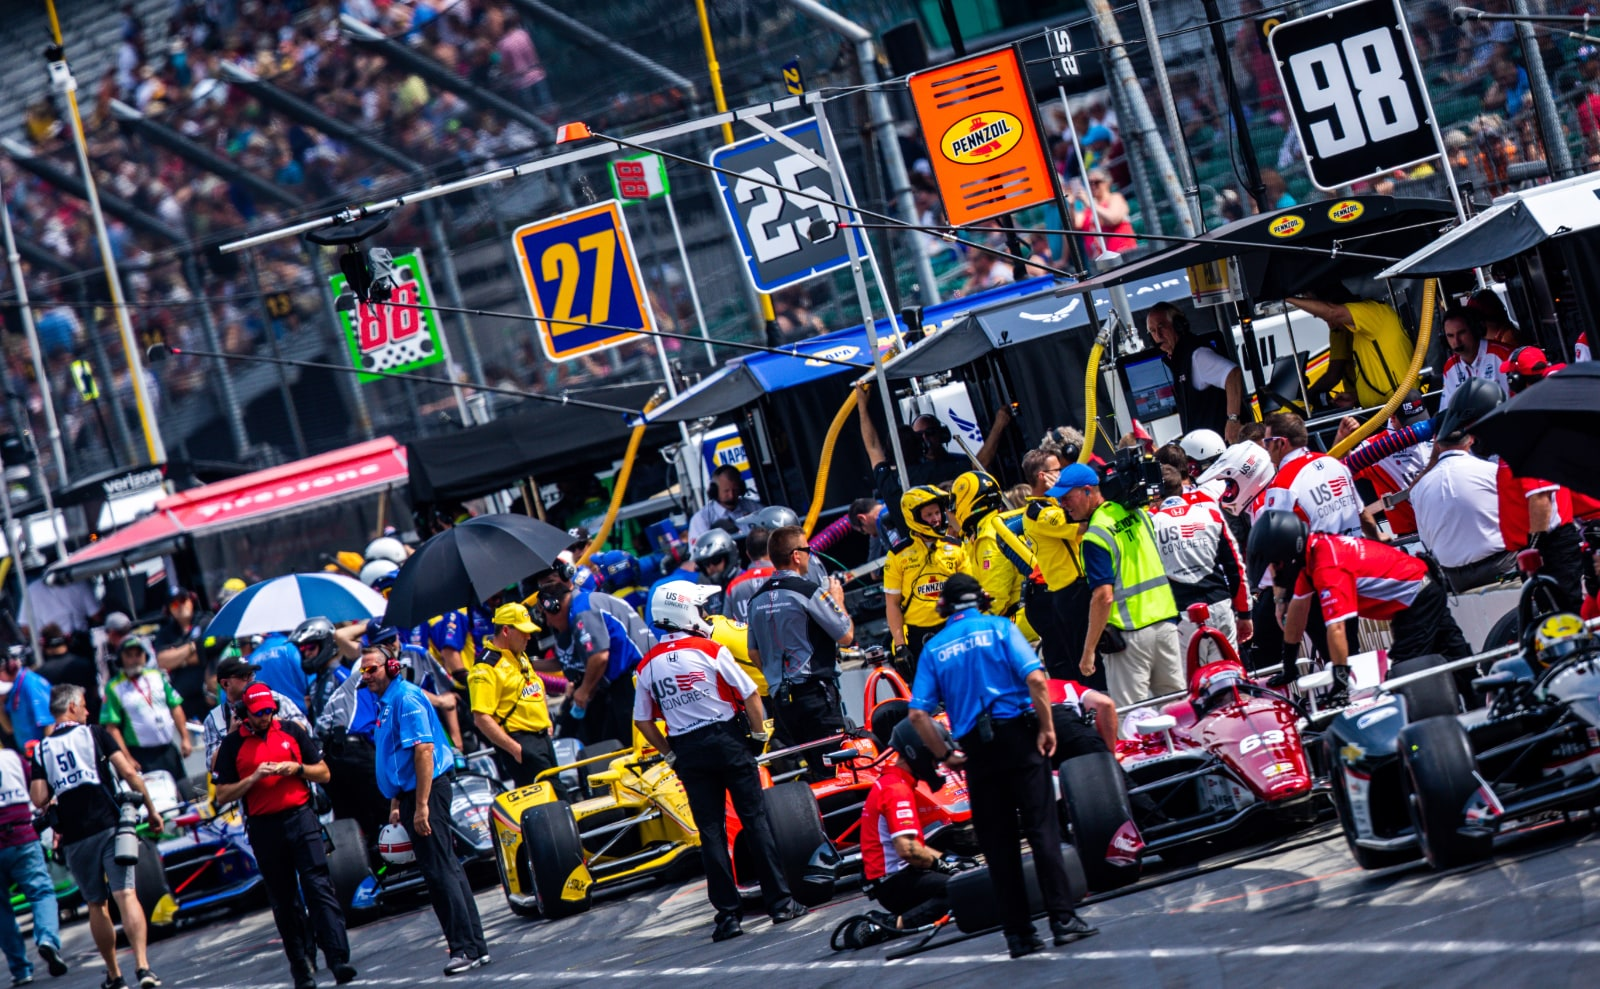 Pit lane during final 2019 Indy 500 practice